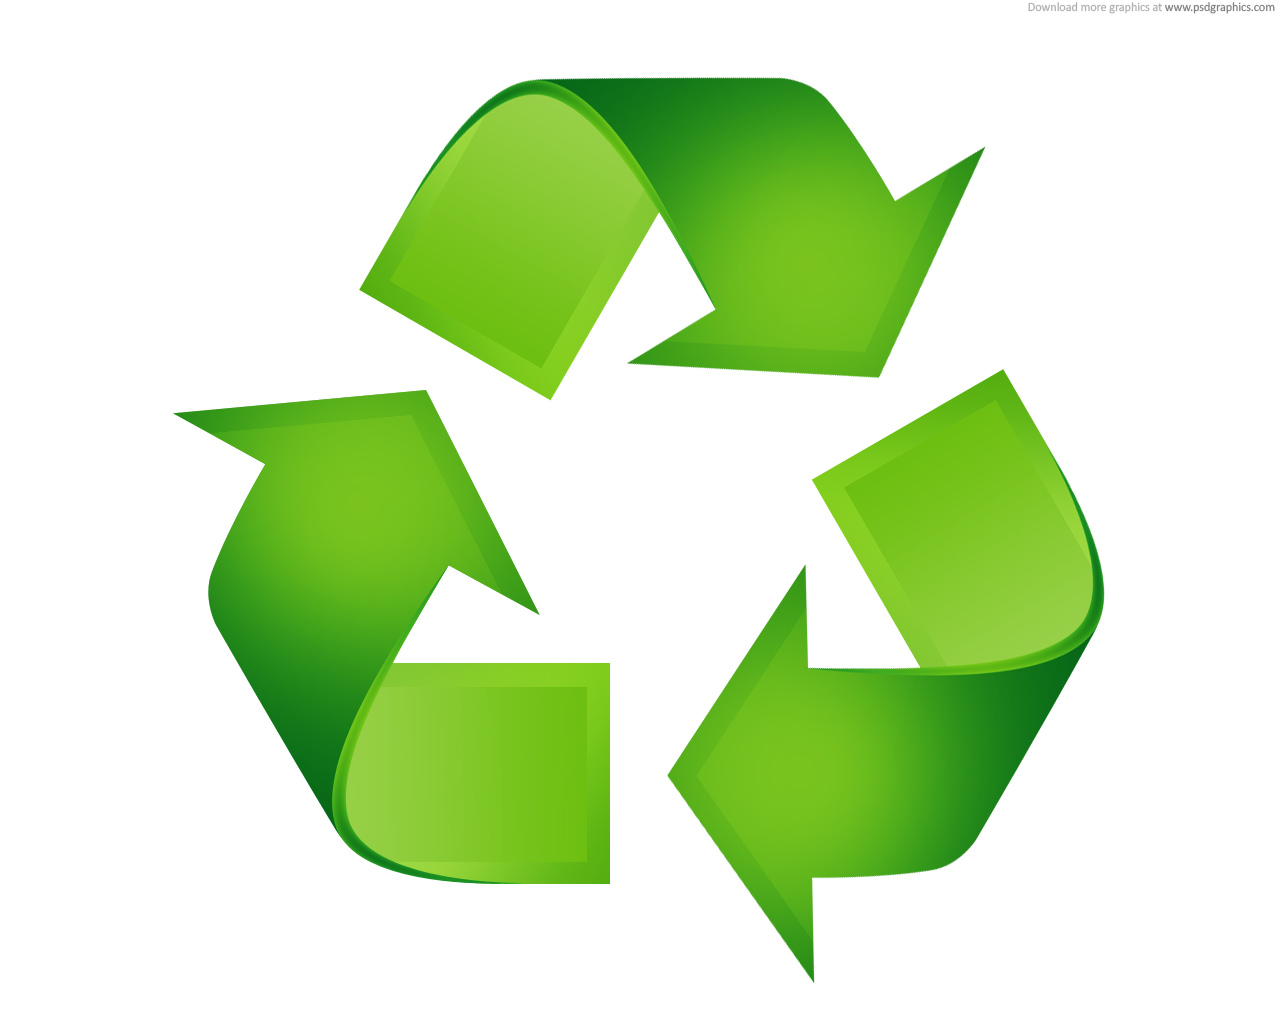 Recycling symbol des moines area mpo recycling symbol biocorpaavc Gallery